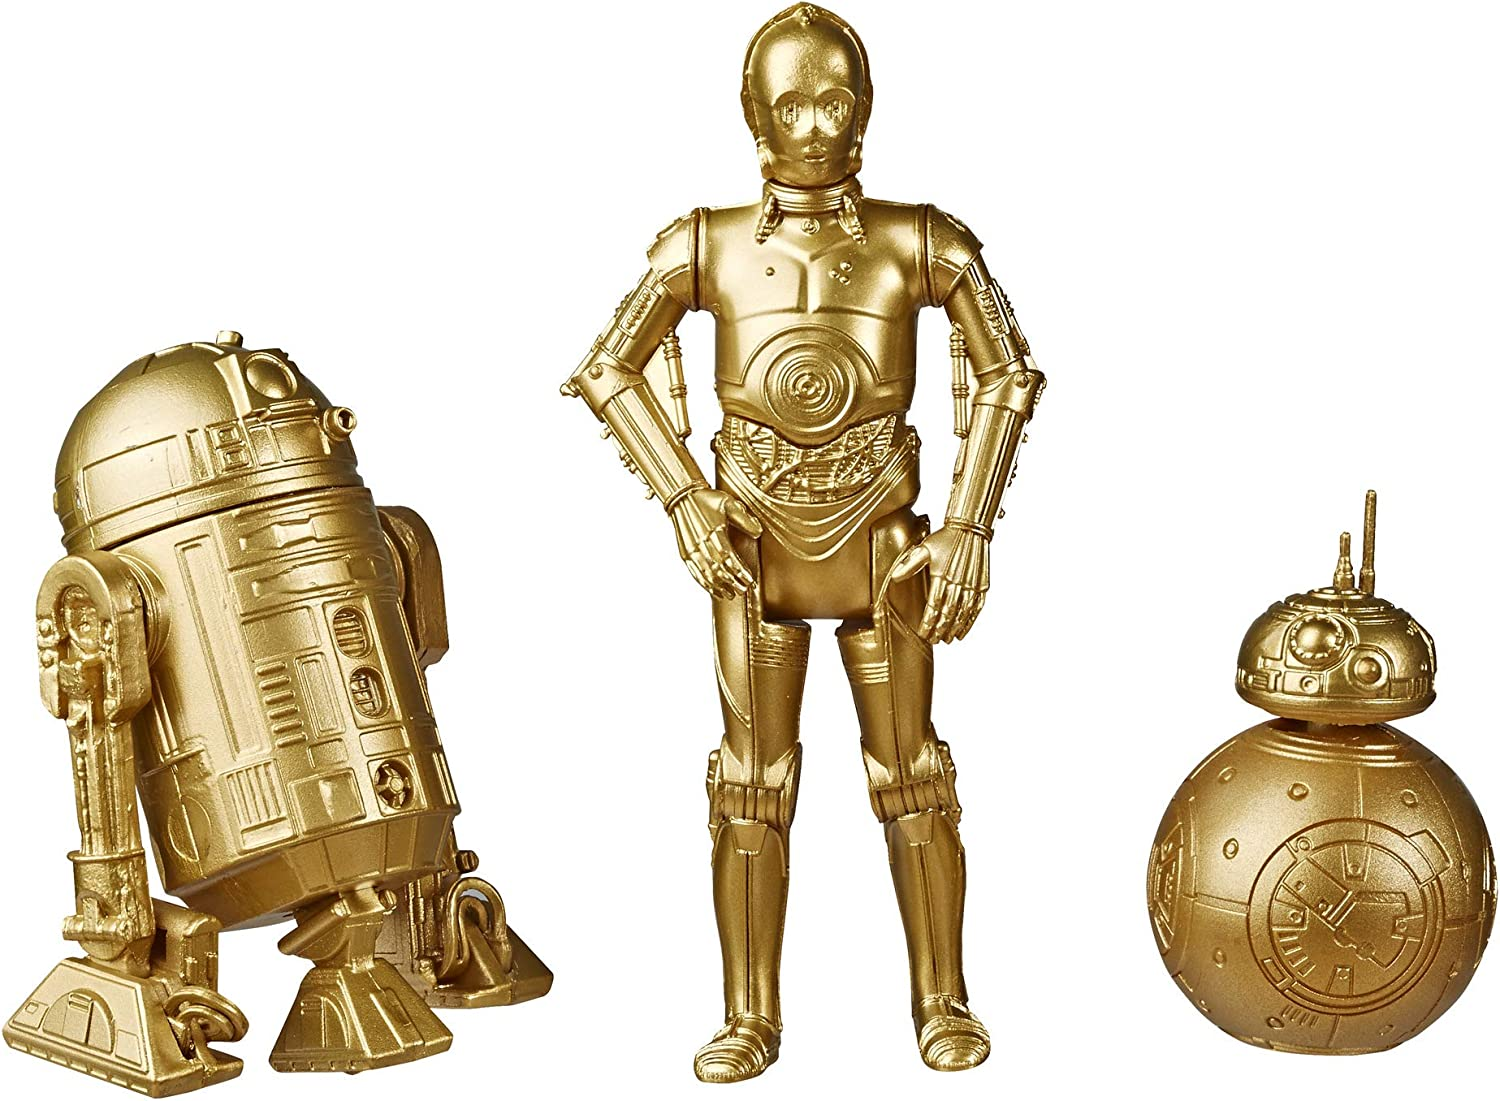 Star Wars Skywalker Saga Commemorative Edition Gold Collectors Series C-3PO, BB-8 and R2-D2 Action Figures 3 Piece Set 2 - 3.5 inches